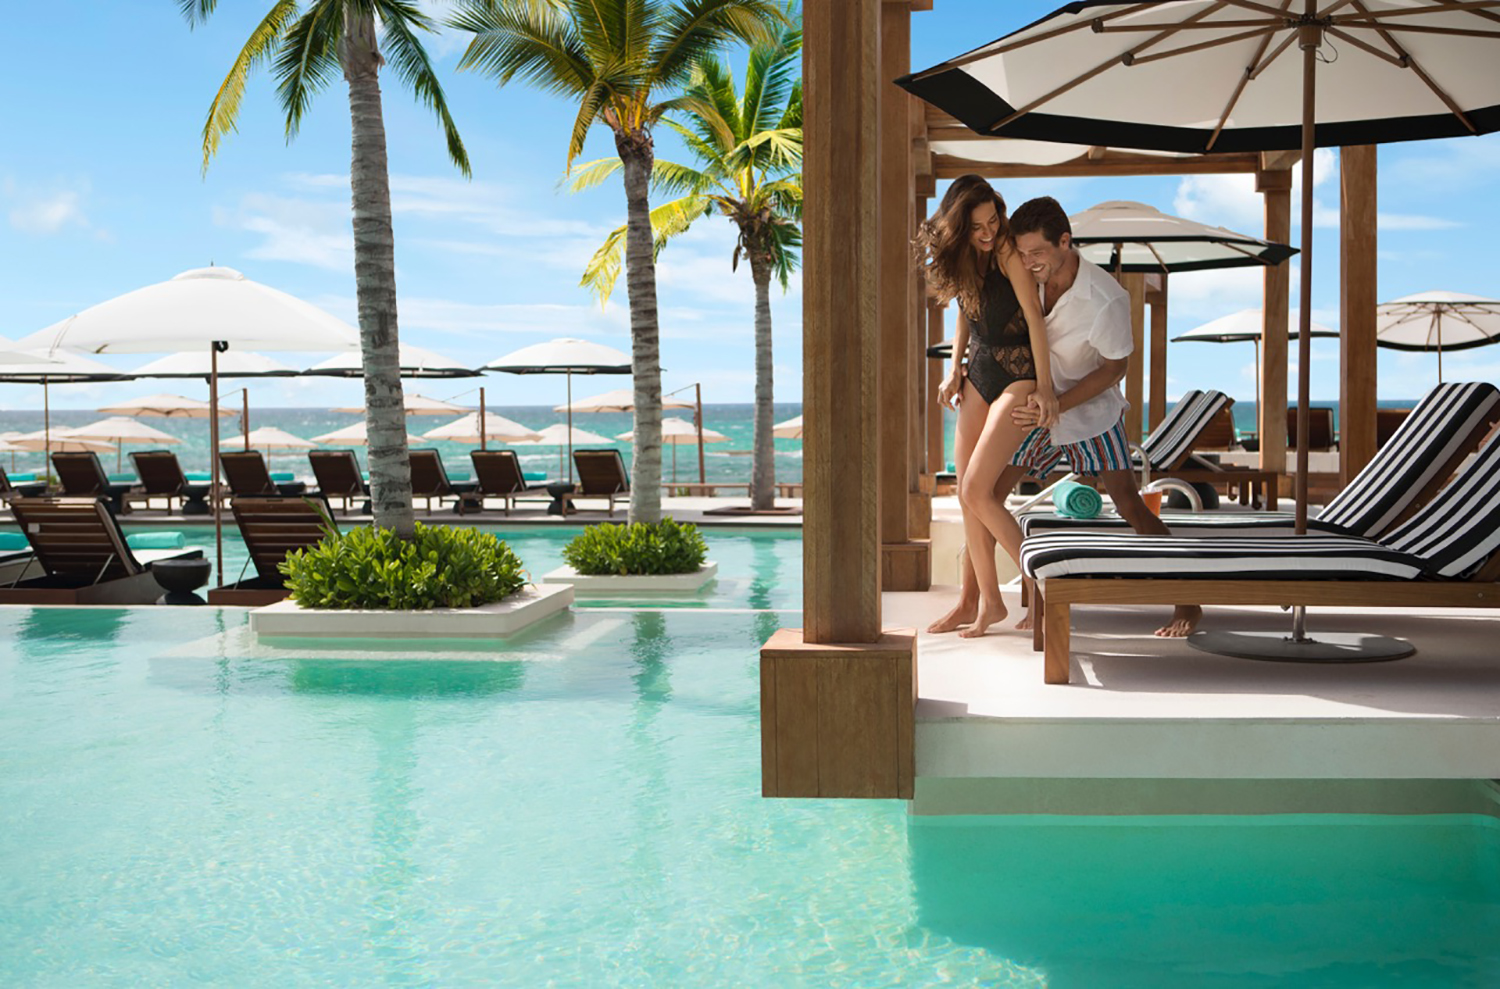 One lucky couple will win their dream wedding in paradise at any one of Vidanta's premier properties.